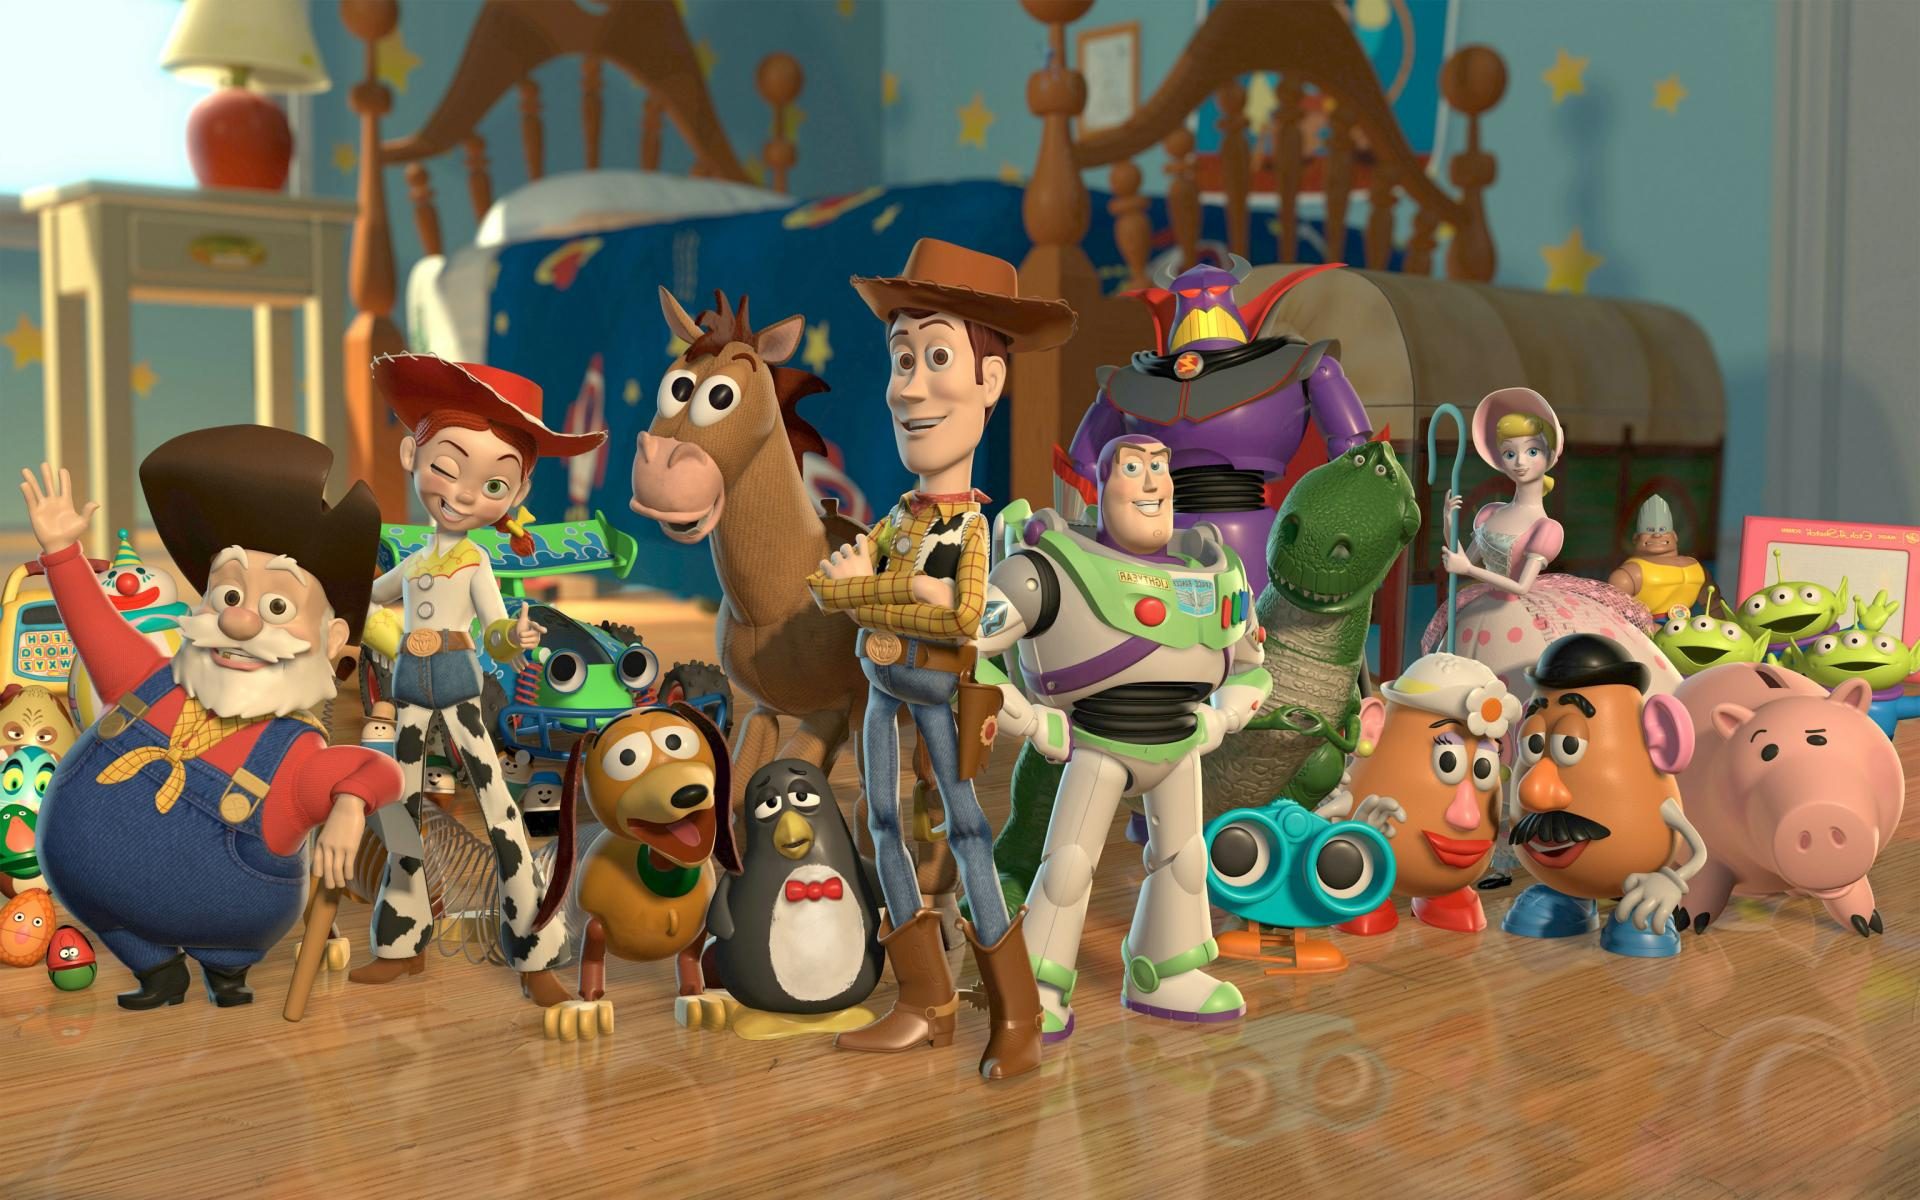 Toy Story 2 Wallpapers Top Free Toy Story 2 Backgrounds Wallpaperaccess